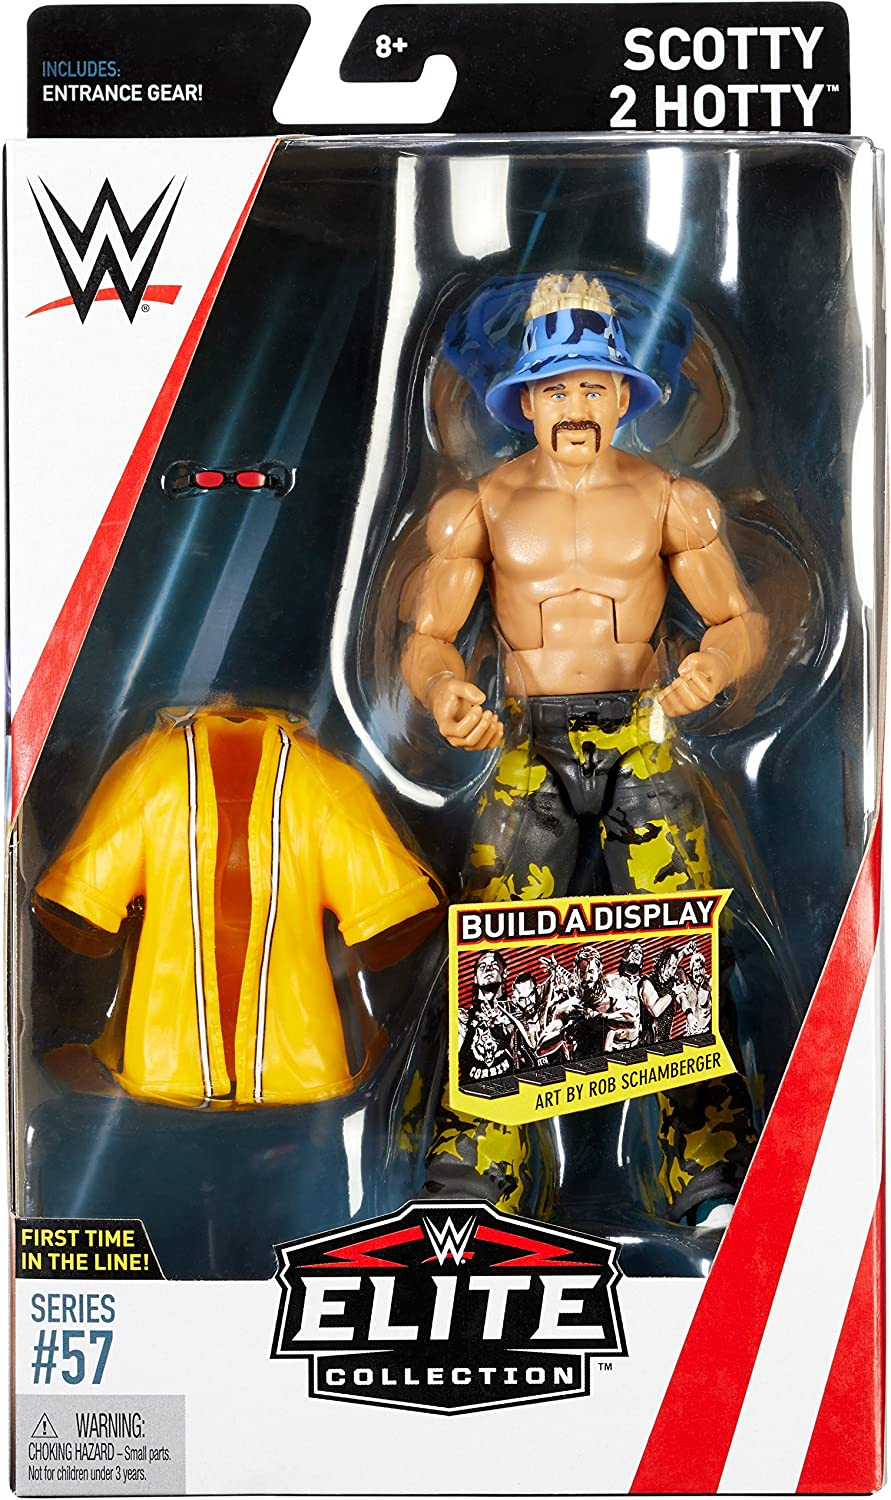 WWE Elite Collection Series # 57 Scotty 2 Hotty Action Figure Mattel FMG49